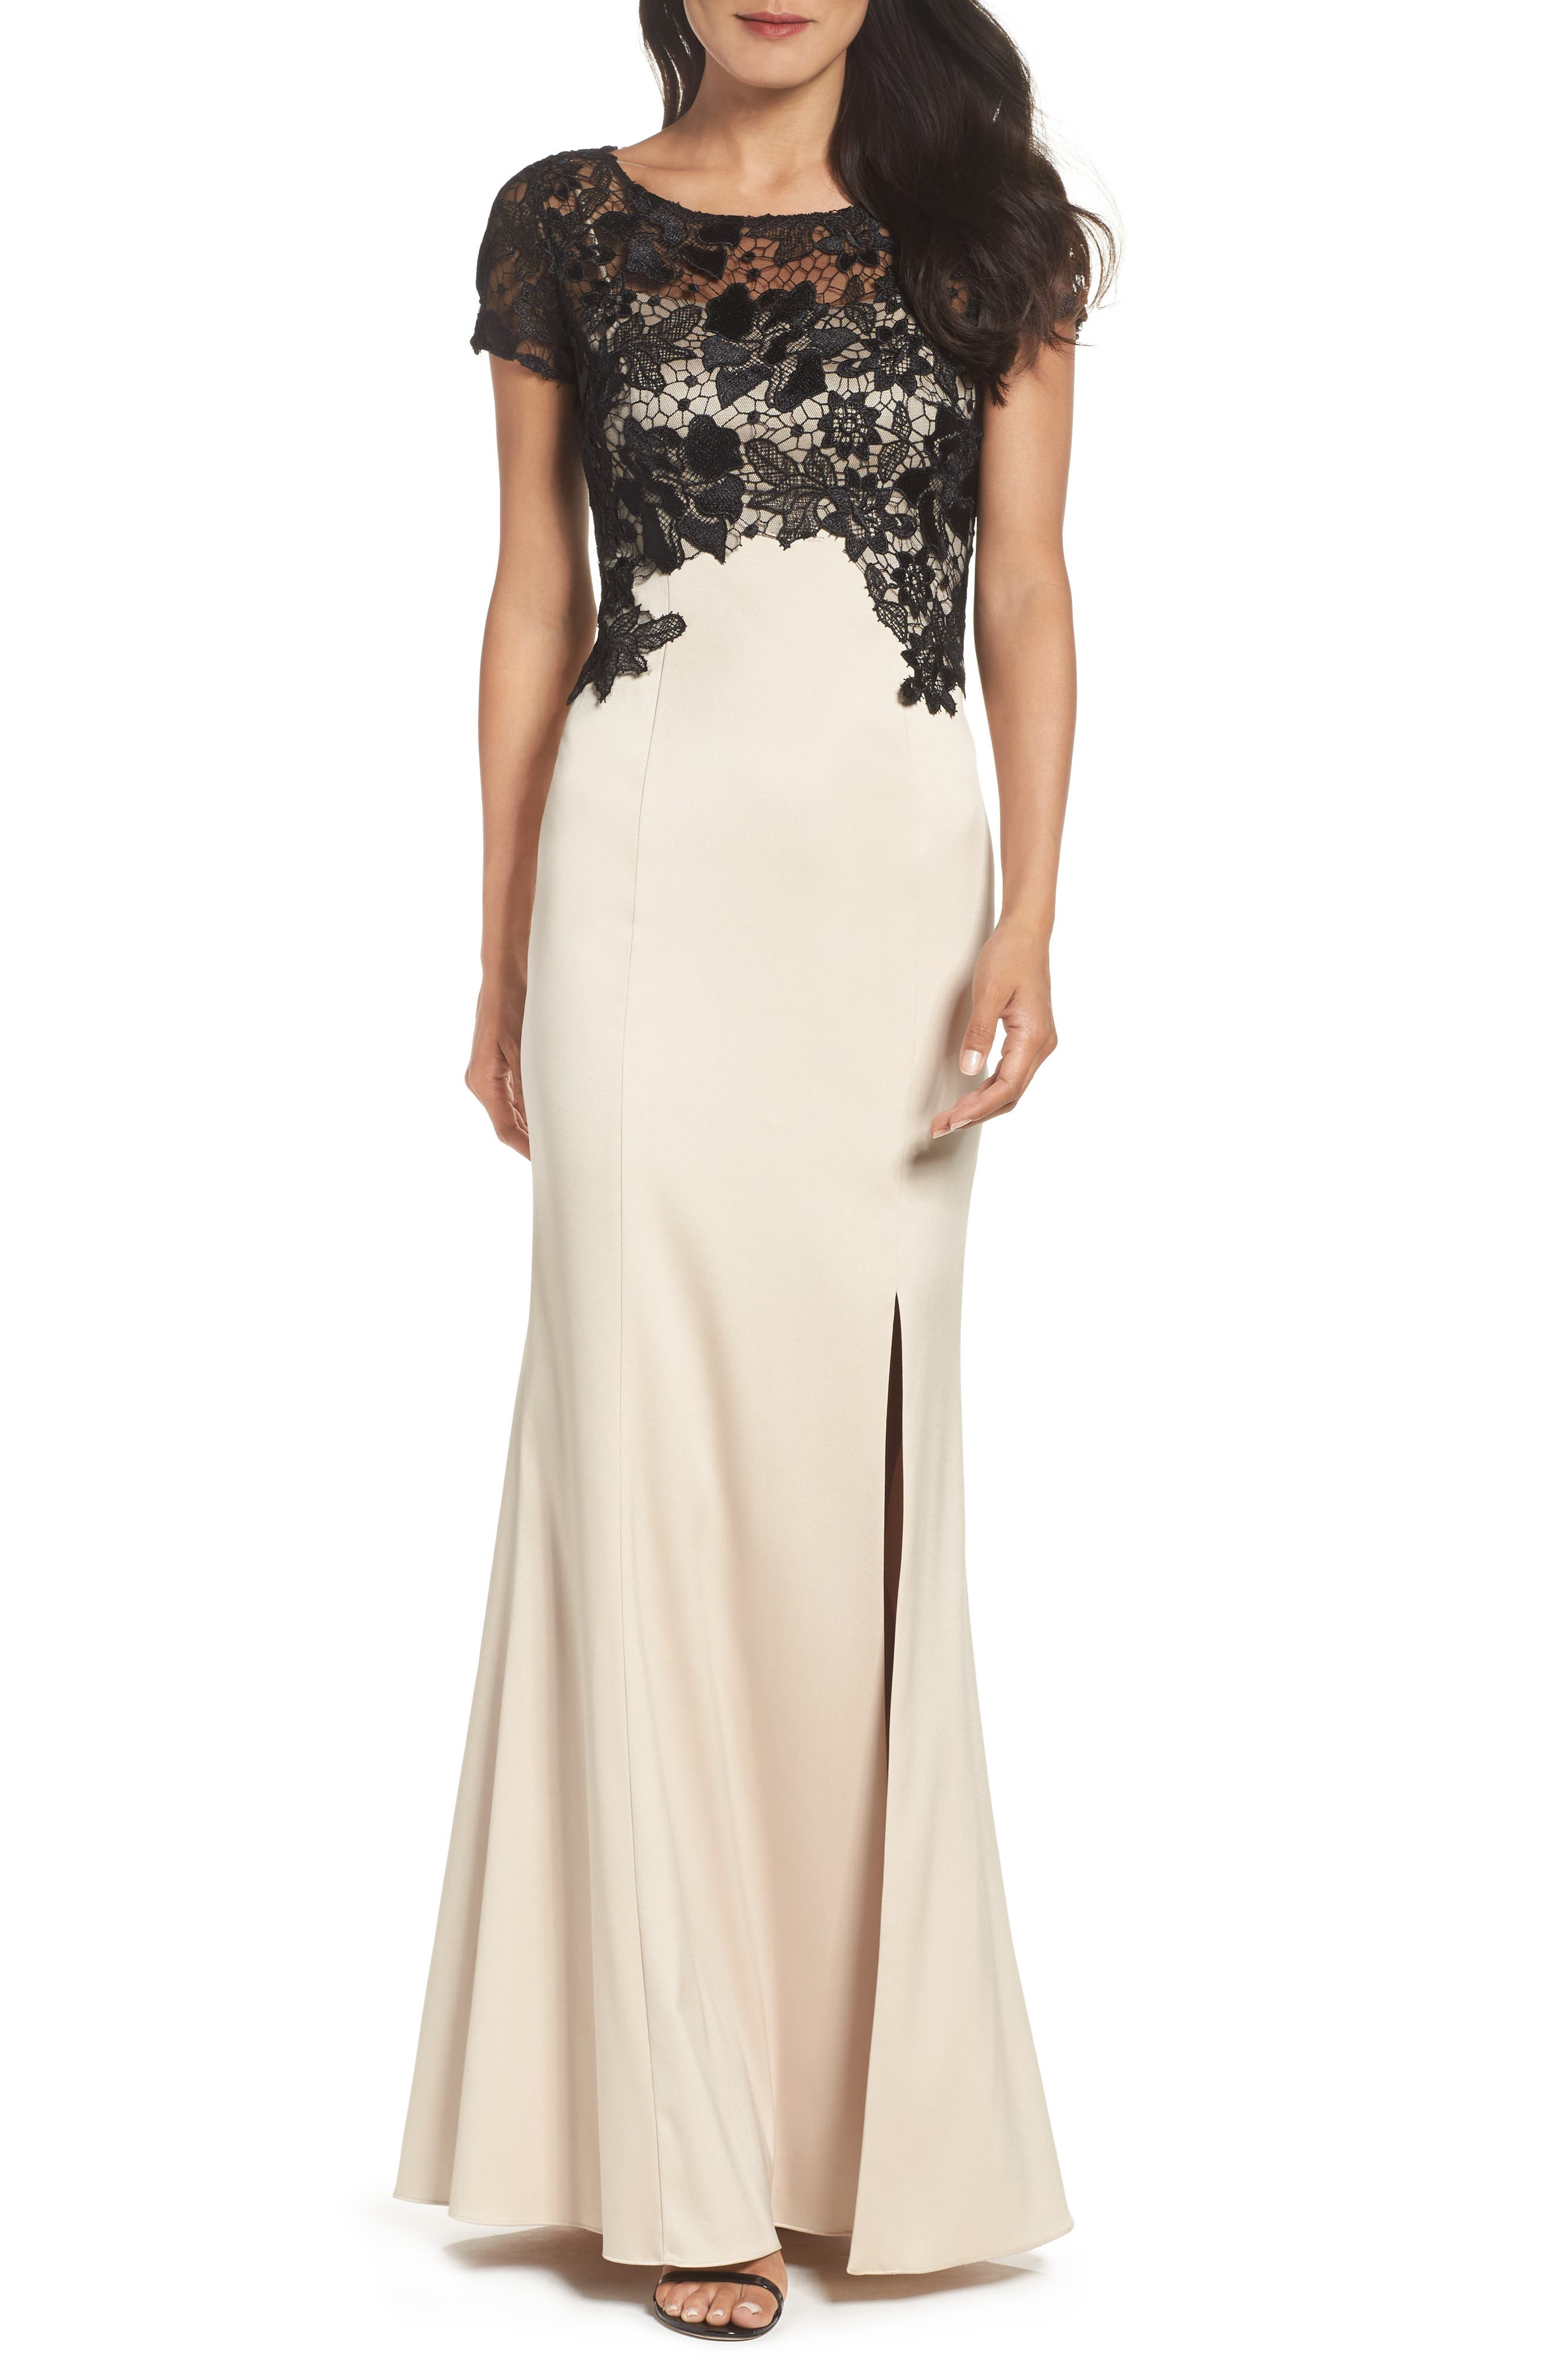 Main Image - Adrianna Papell Lace Mermaid Gown